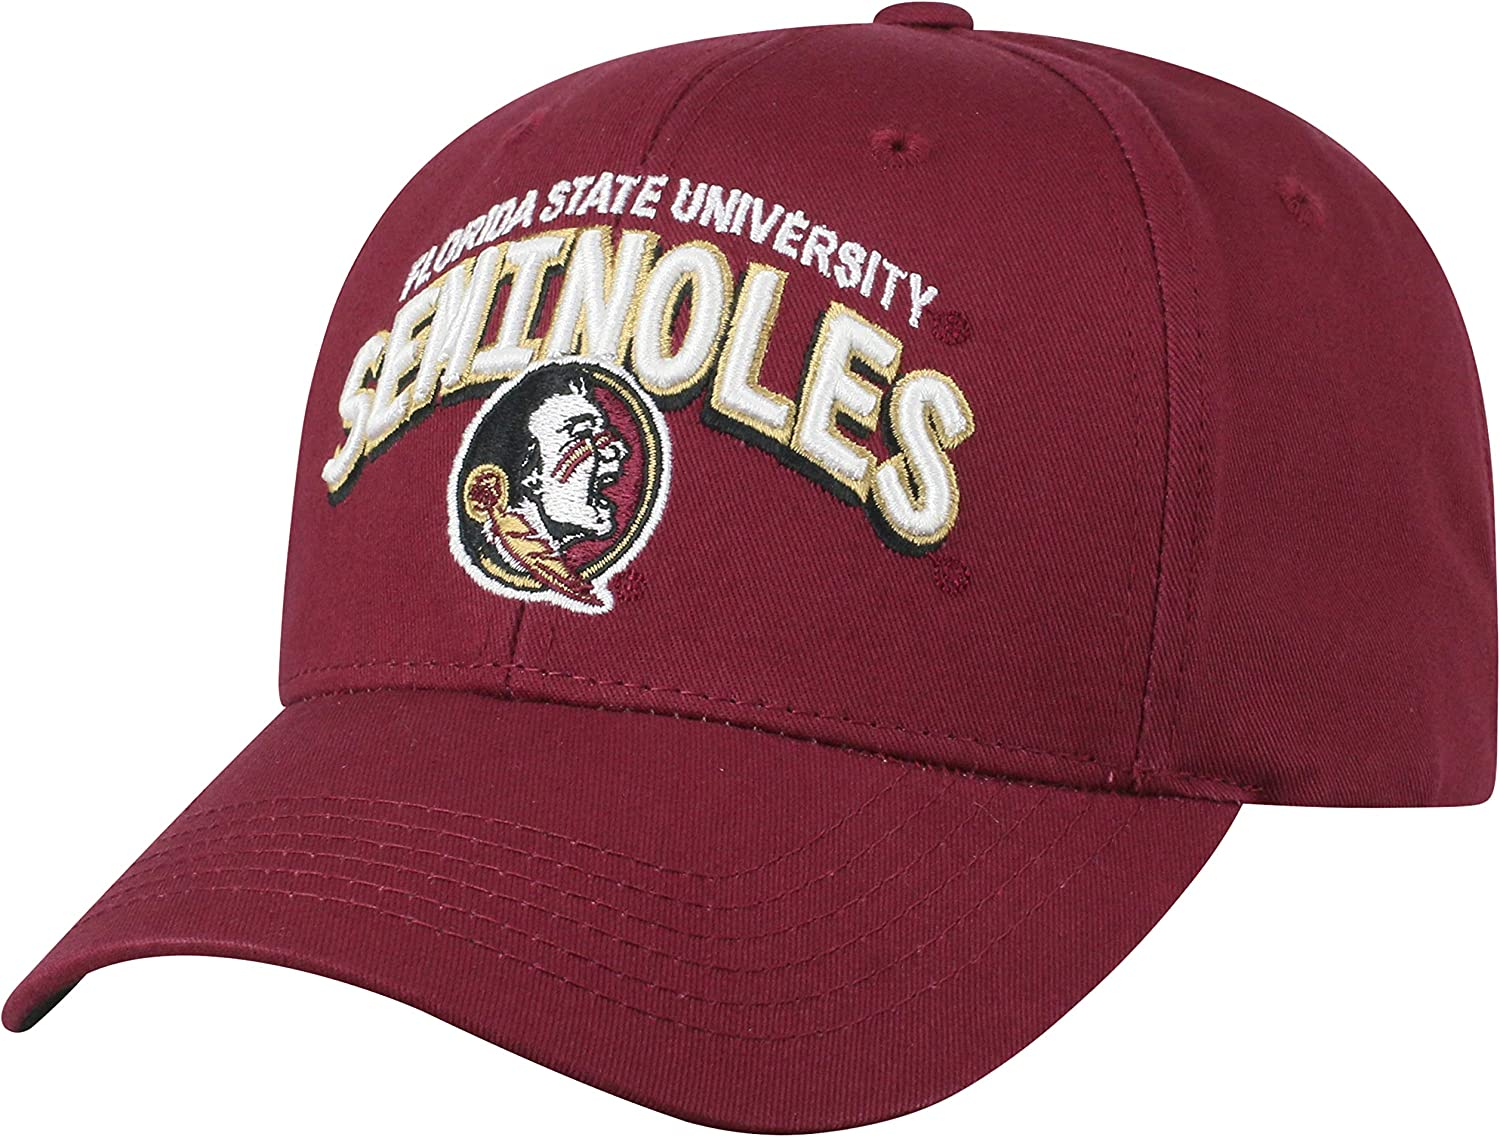 NCAA Adjustable Curved Bill C Deal Hat Cap Top of The World